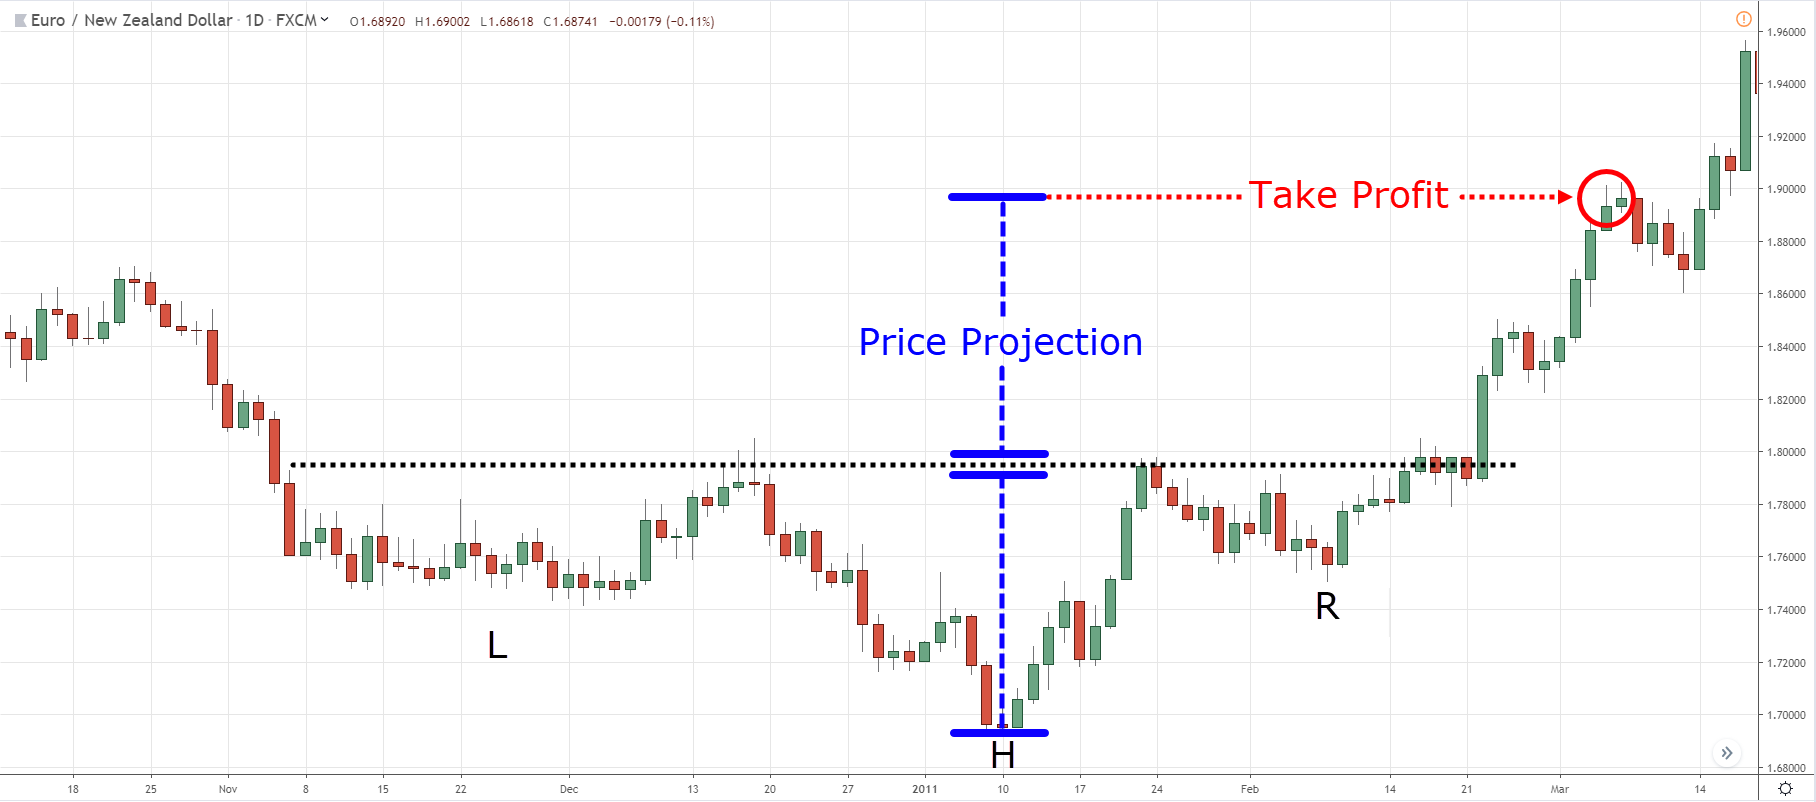 11.-IHS-Price-Projection.